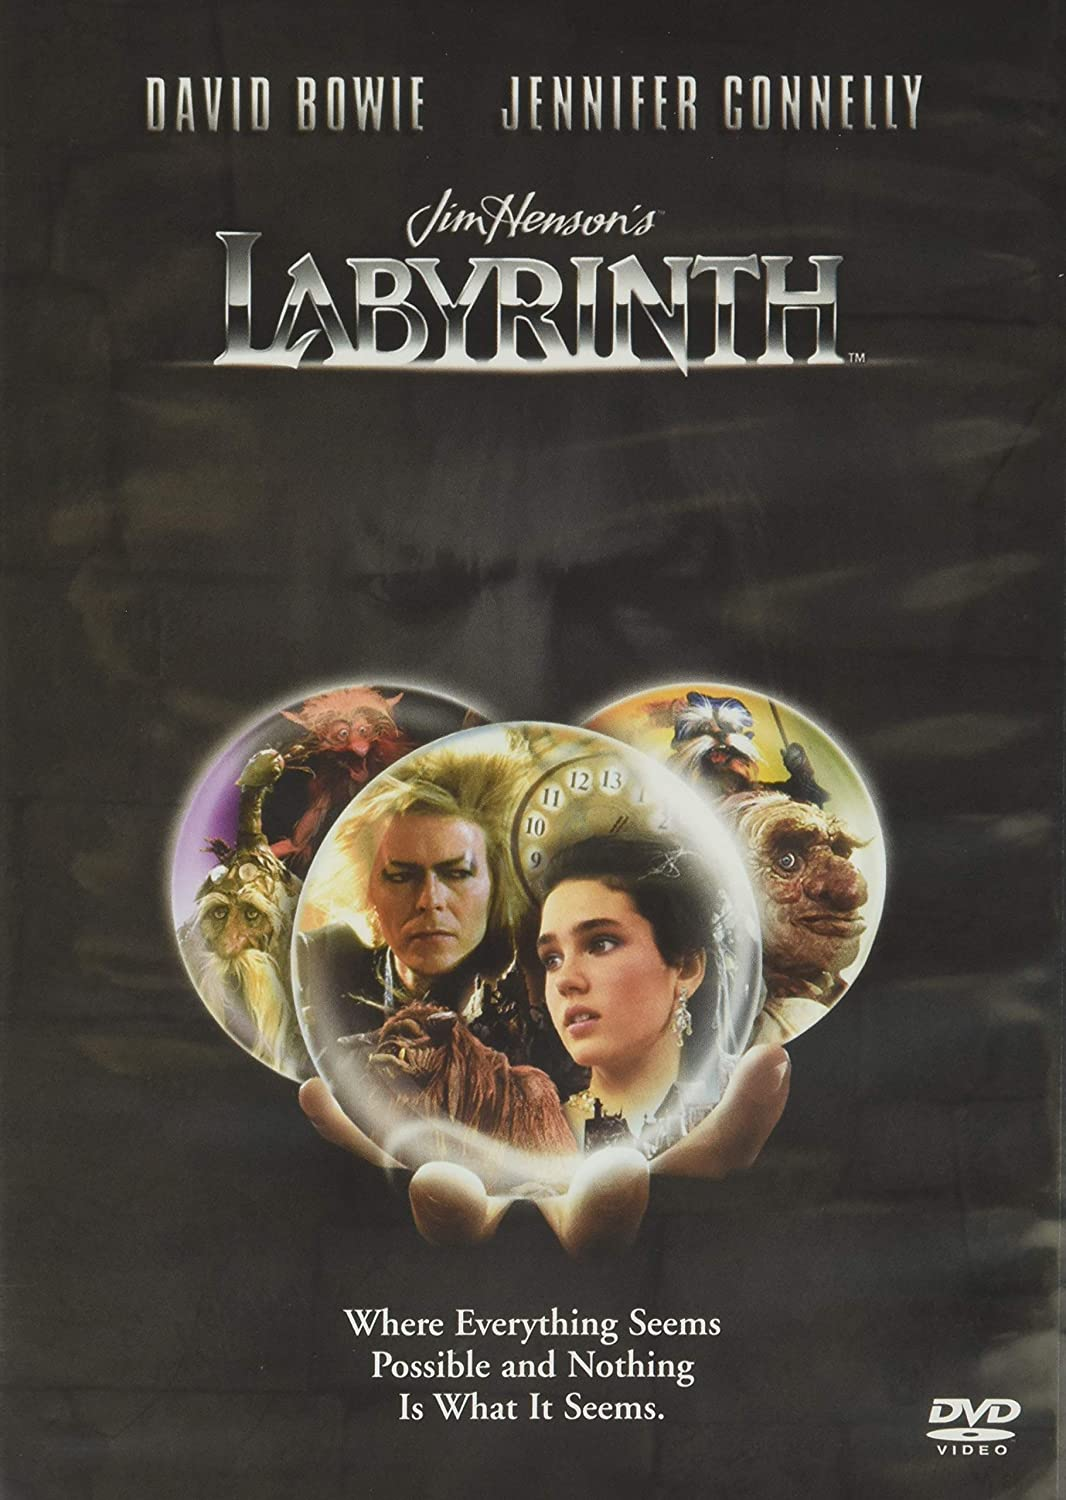 Halloween Movies to Watch with Your Family: The Labyrinth | The Dating Divas